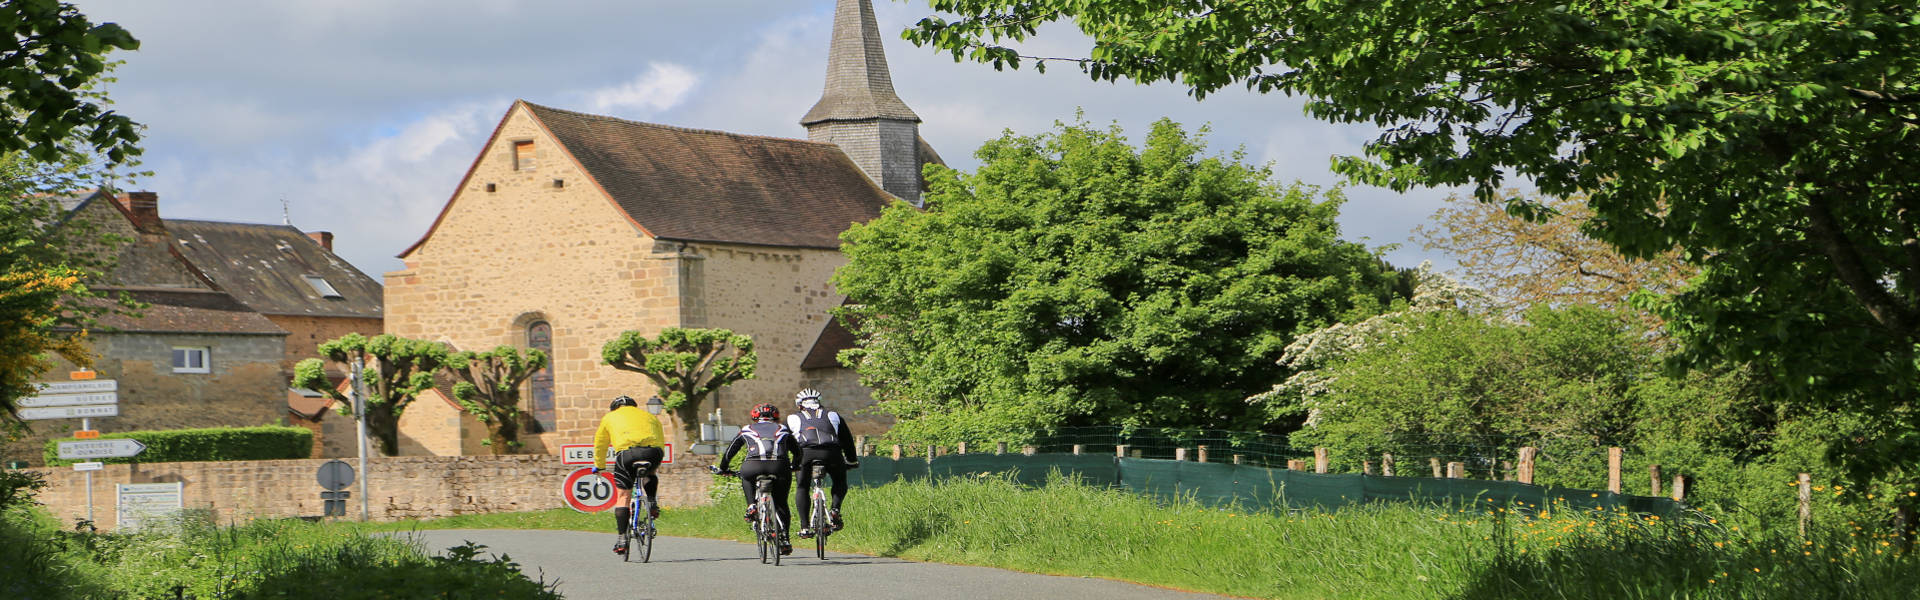 Cyclists Church